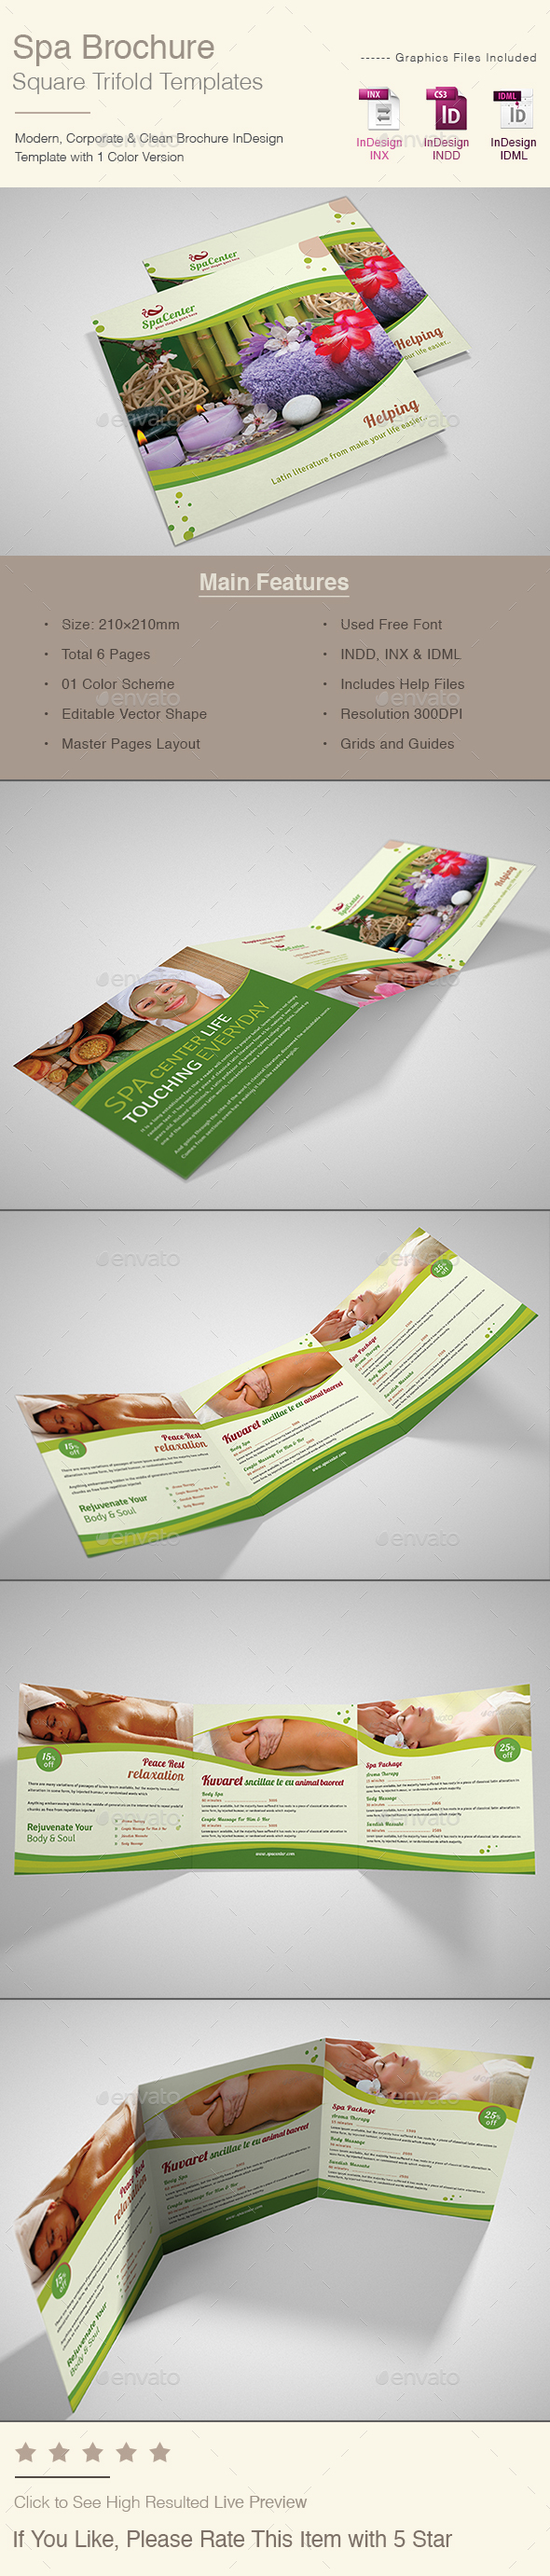 Spa Brochure Square Trifold - Corporate Brochures